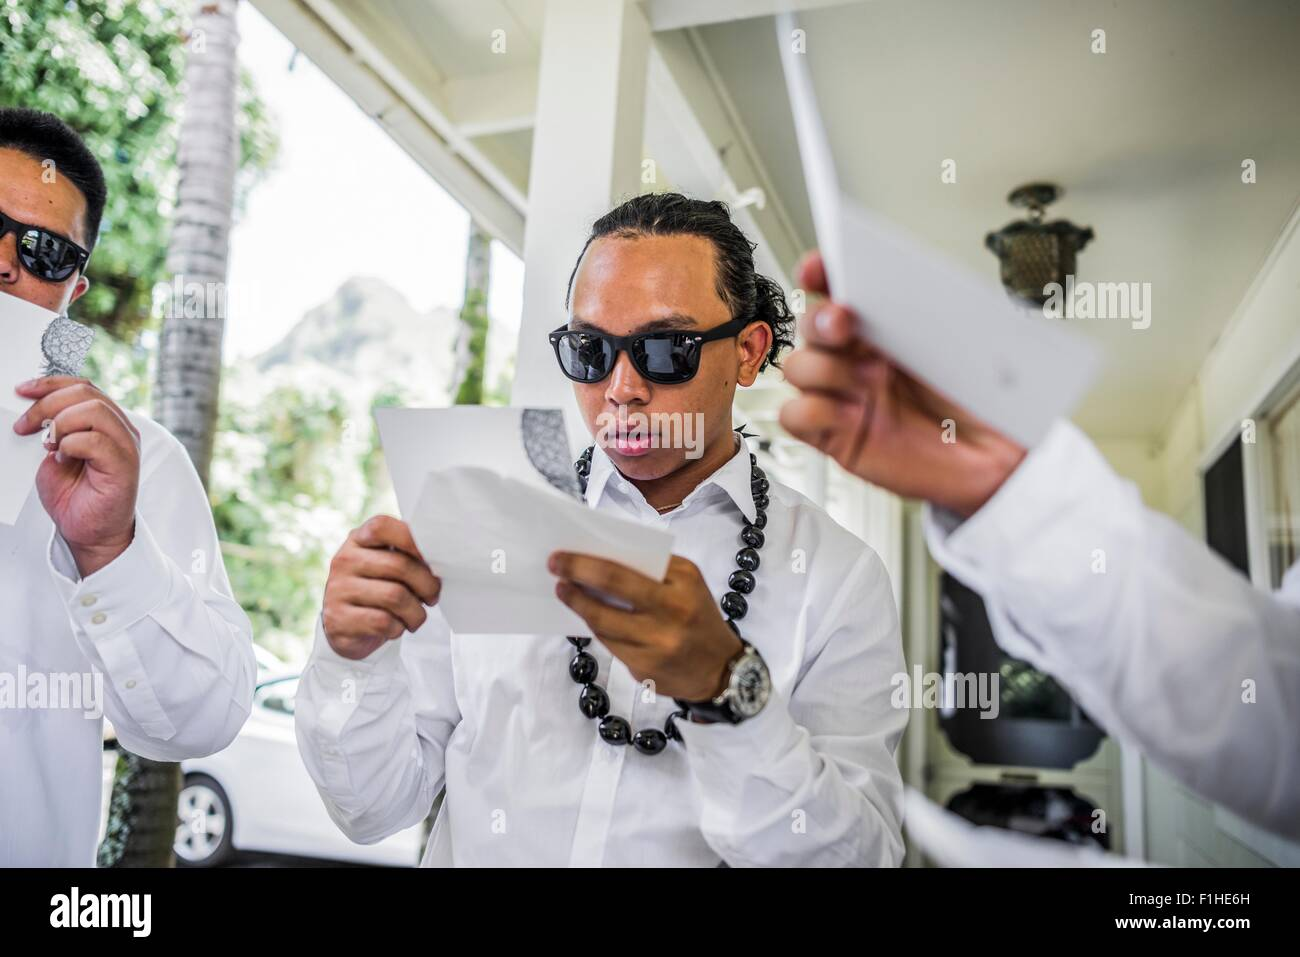 Young men preparing for Hawaiian wedding wearing kukui nut beads, Kaaawa, Oahu, Hawaii, USA - Stock Image